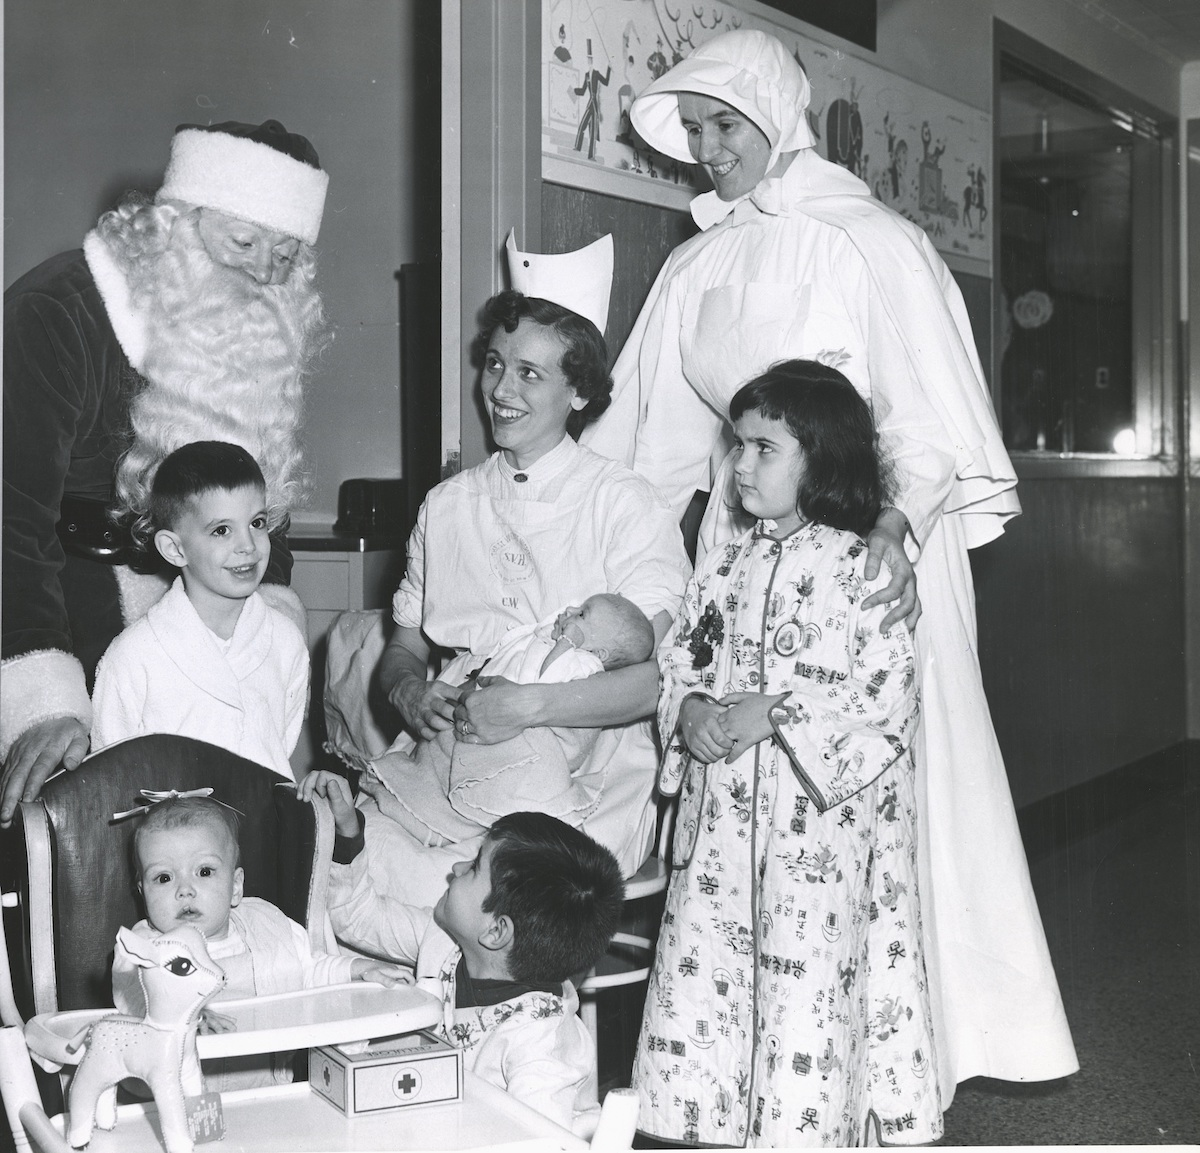 Pediatric patients at Christmas party